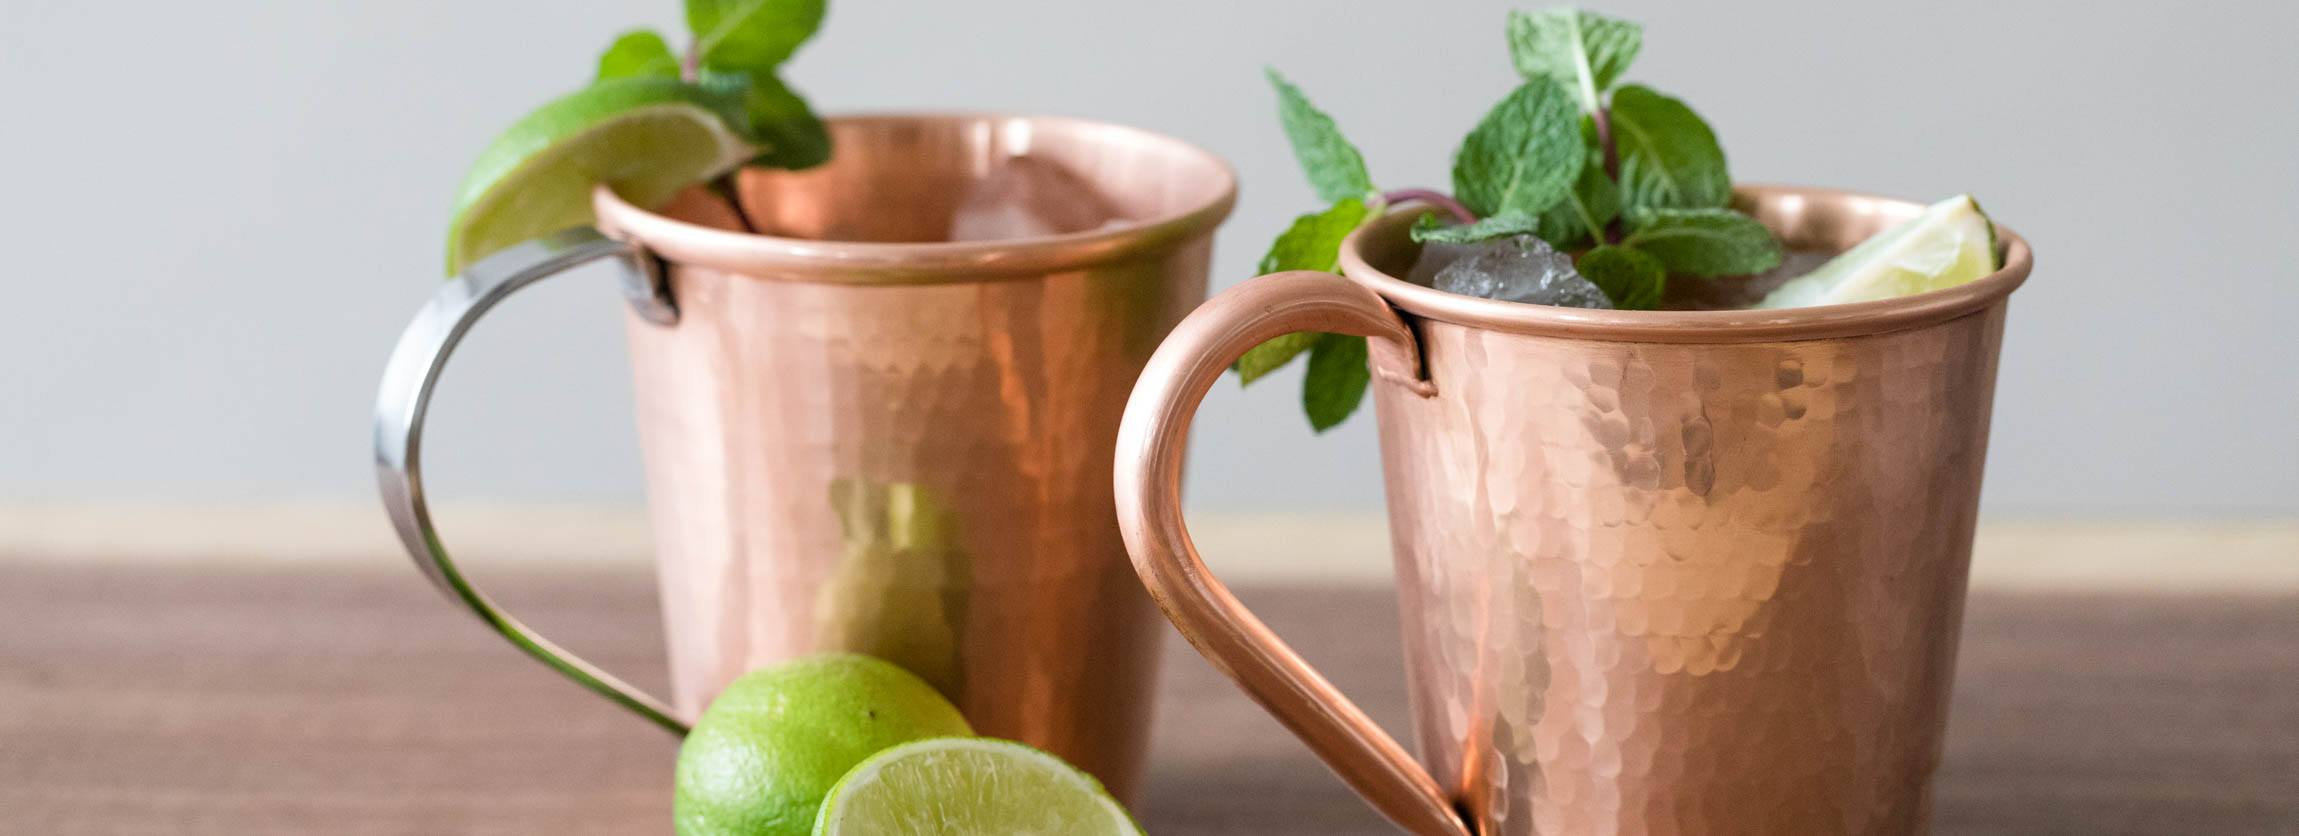 Hammered Copper Moscow Mule Mugs by Sertodo Copper